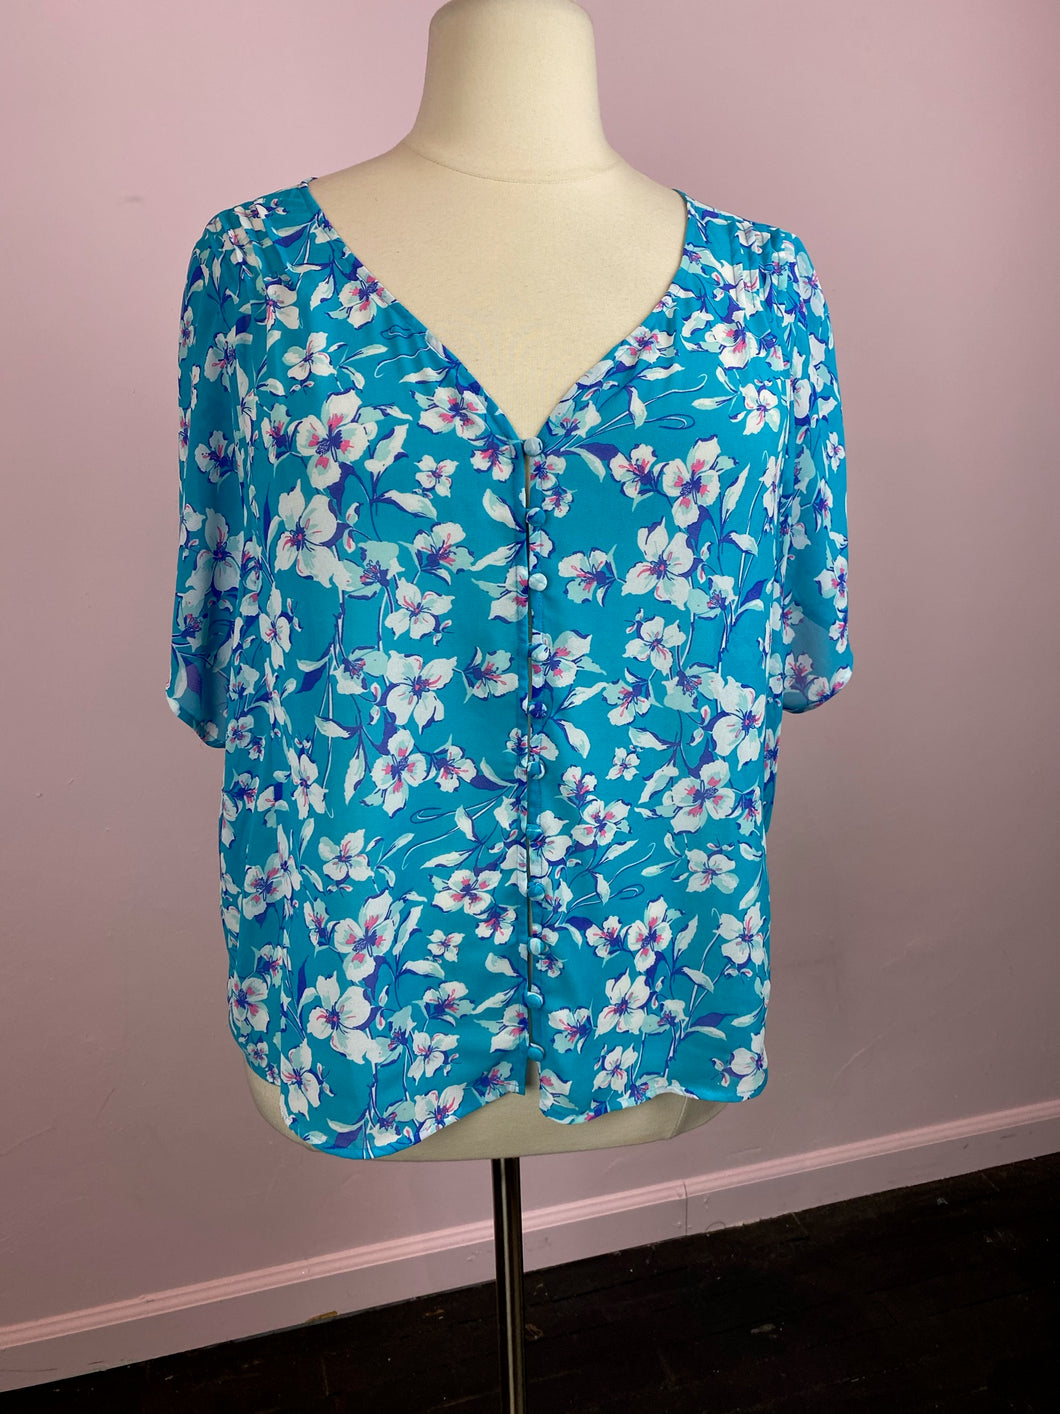 Cerulean Blue with White and Pink Floral Blouse by Torrid, Size 1